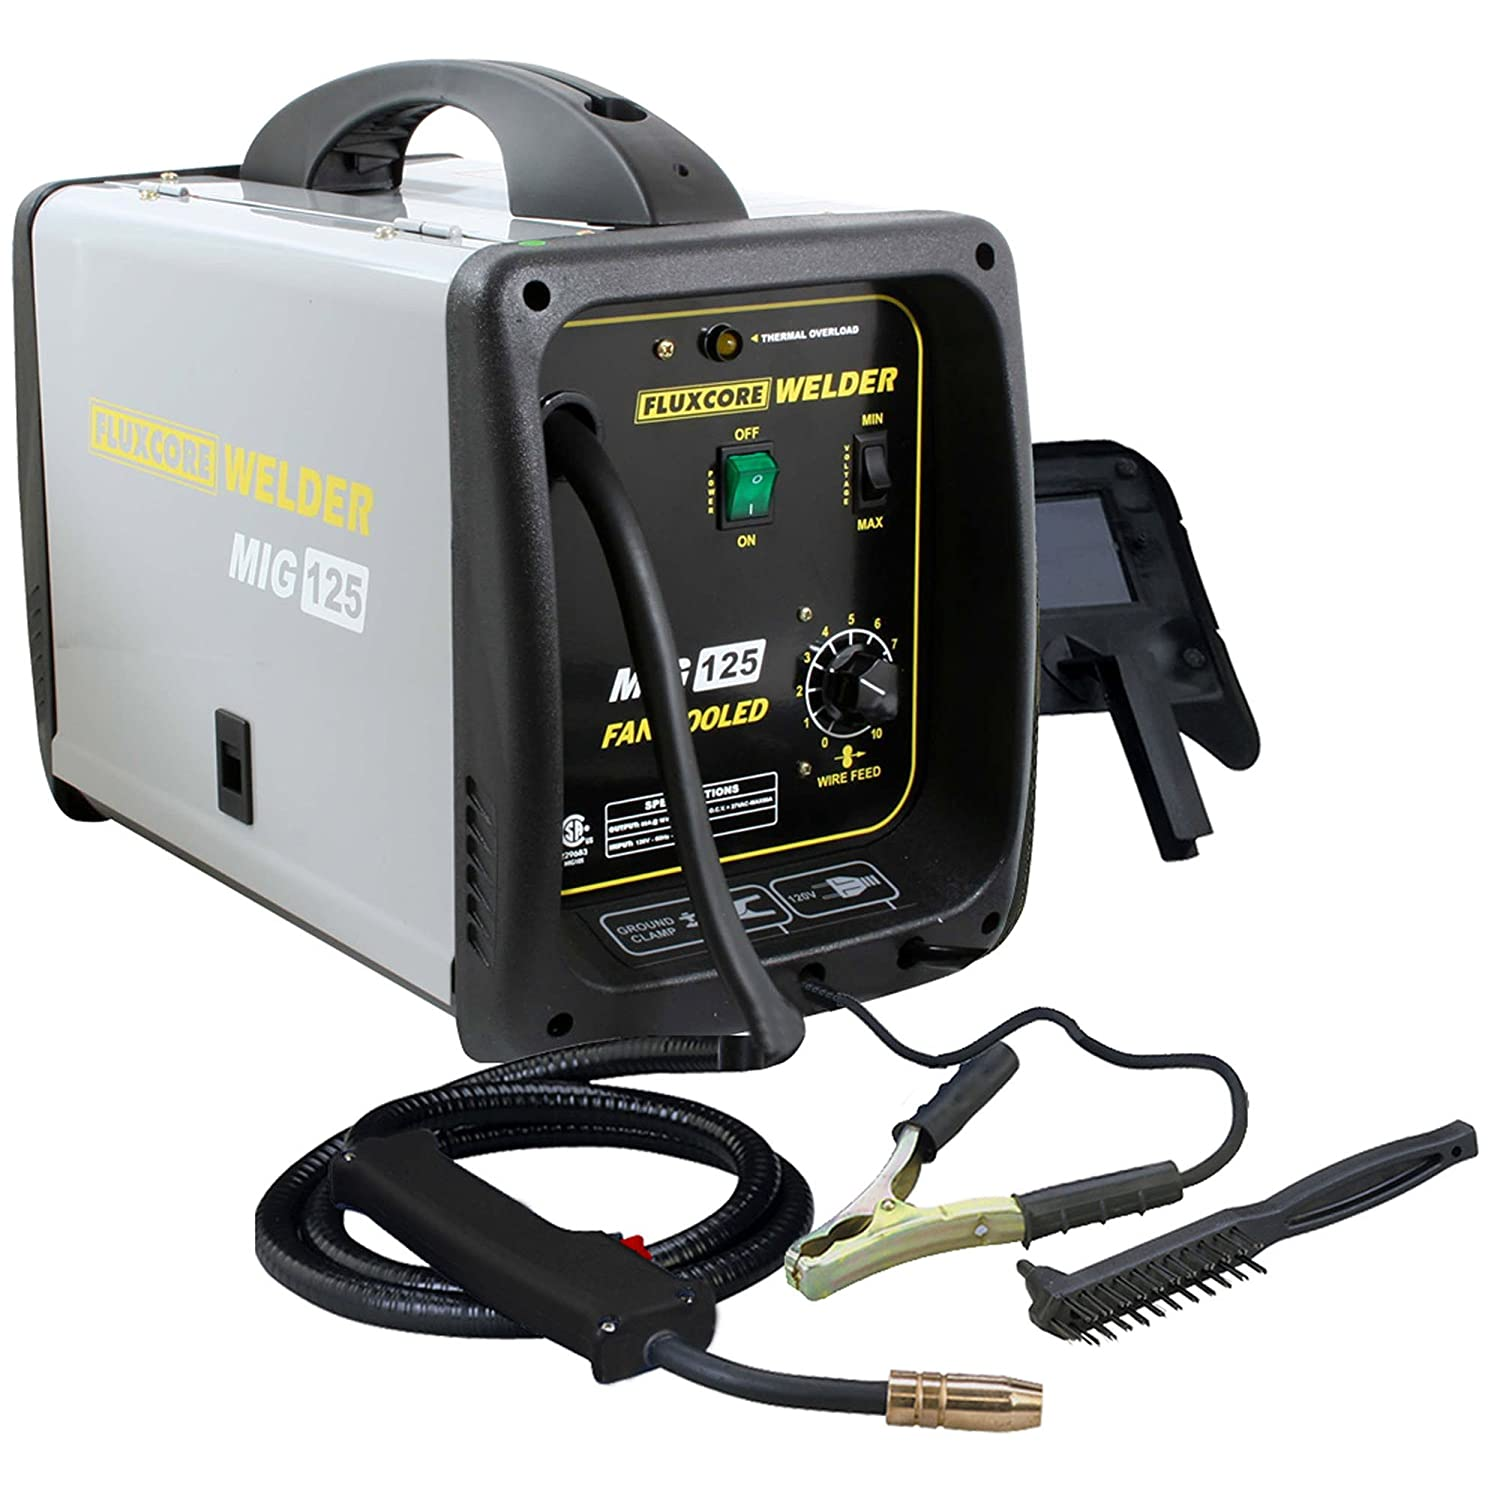 Pro-Series MMIG125 125 Amp Fluxcore Welder Kit, Black - Mig Welding ...